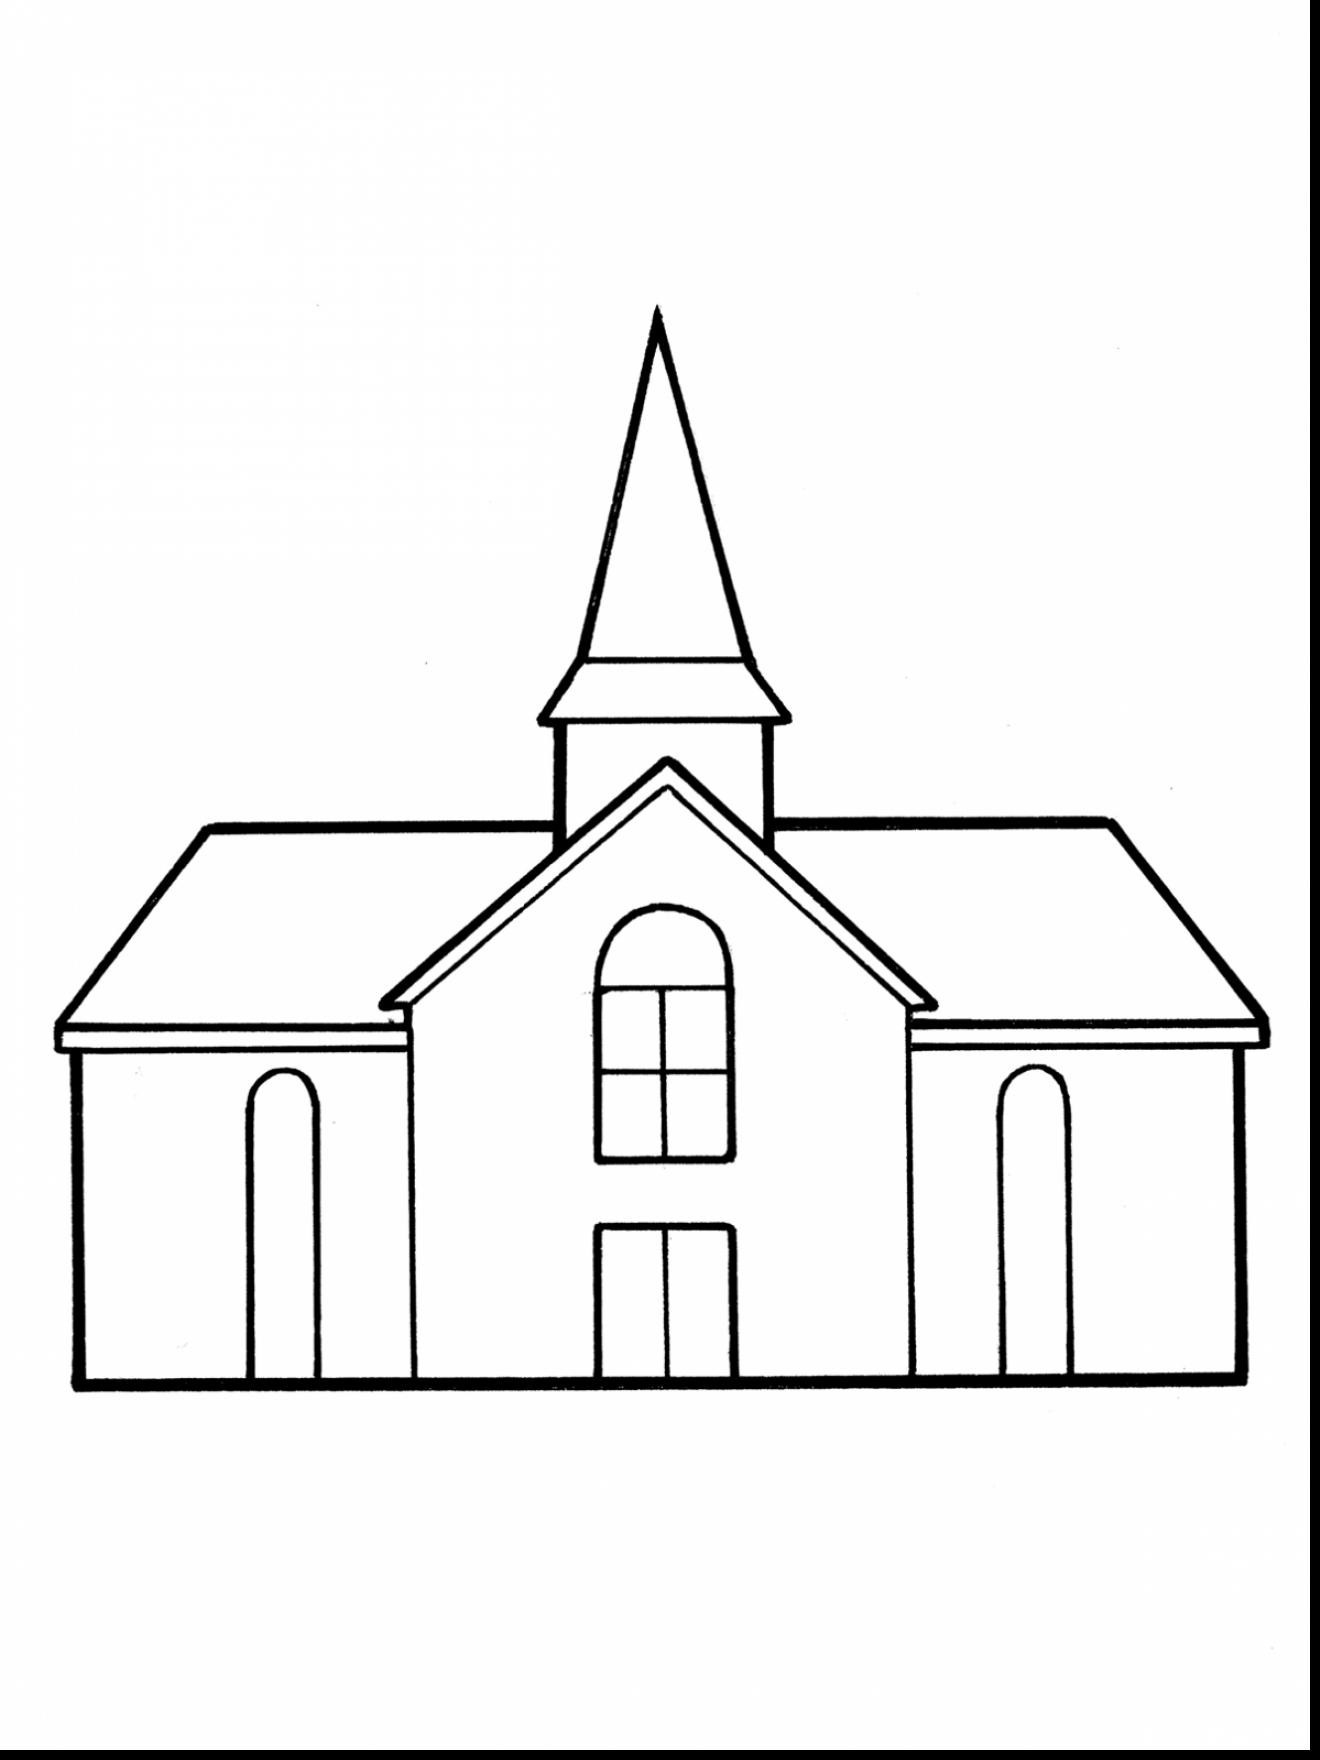 Building Coloring Page Lovely Lds Church Building Coloring Page Lovespells